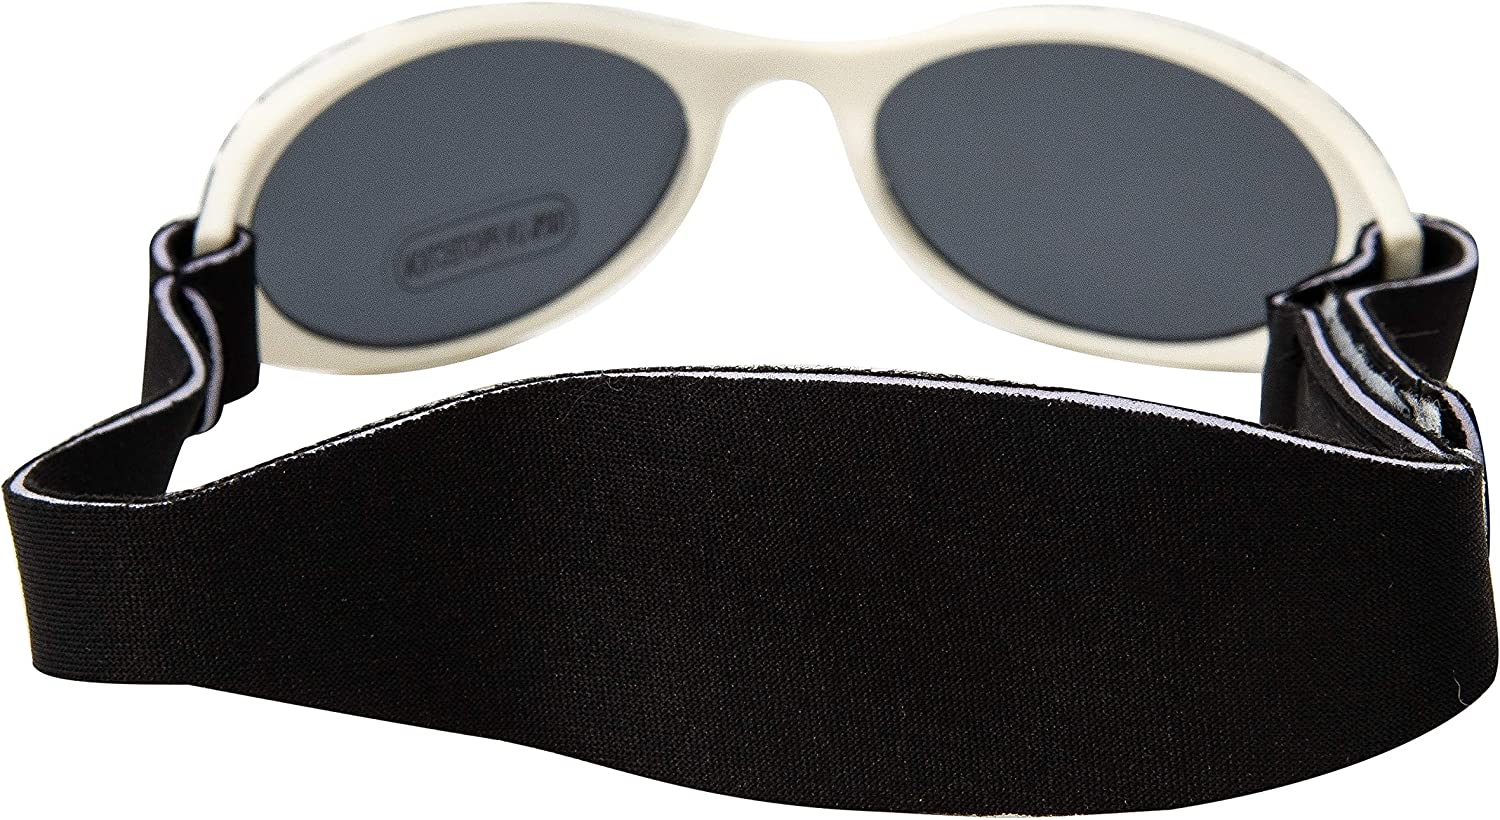 Baby Solo Original Sunglasses Baby Toddler Infant Newborn Durable Case Included